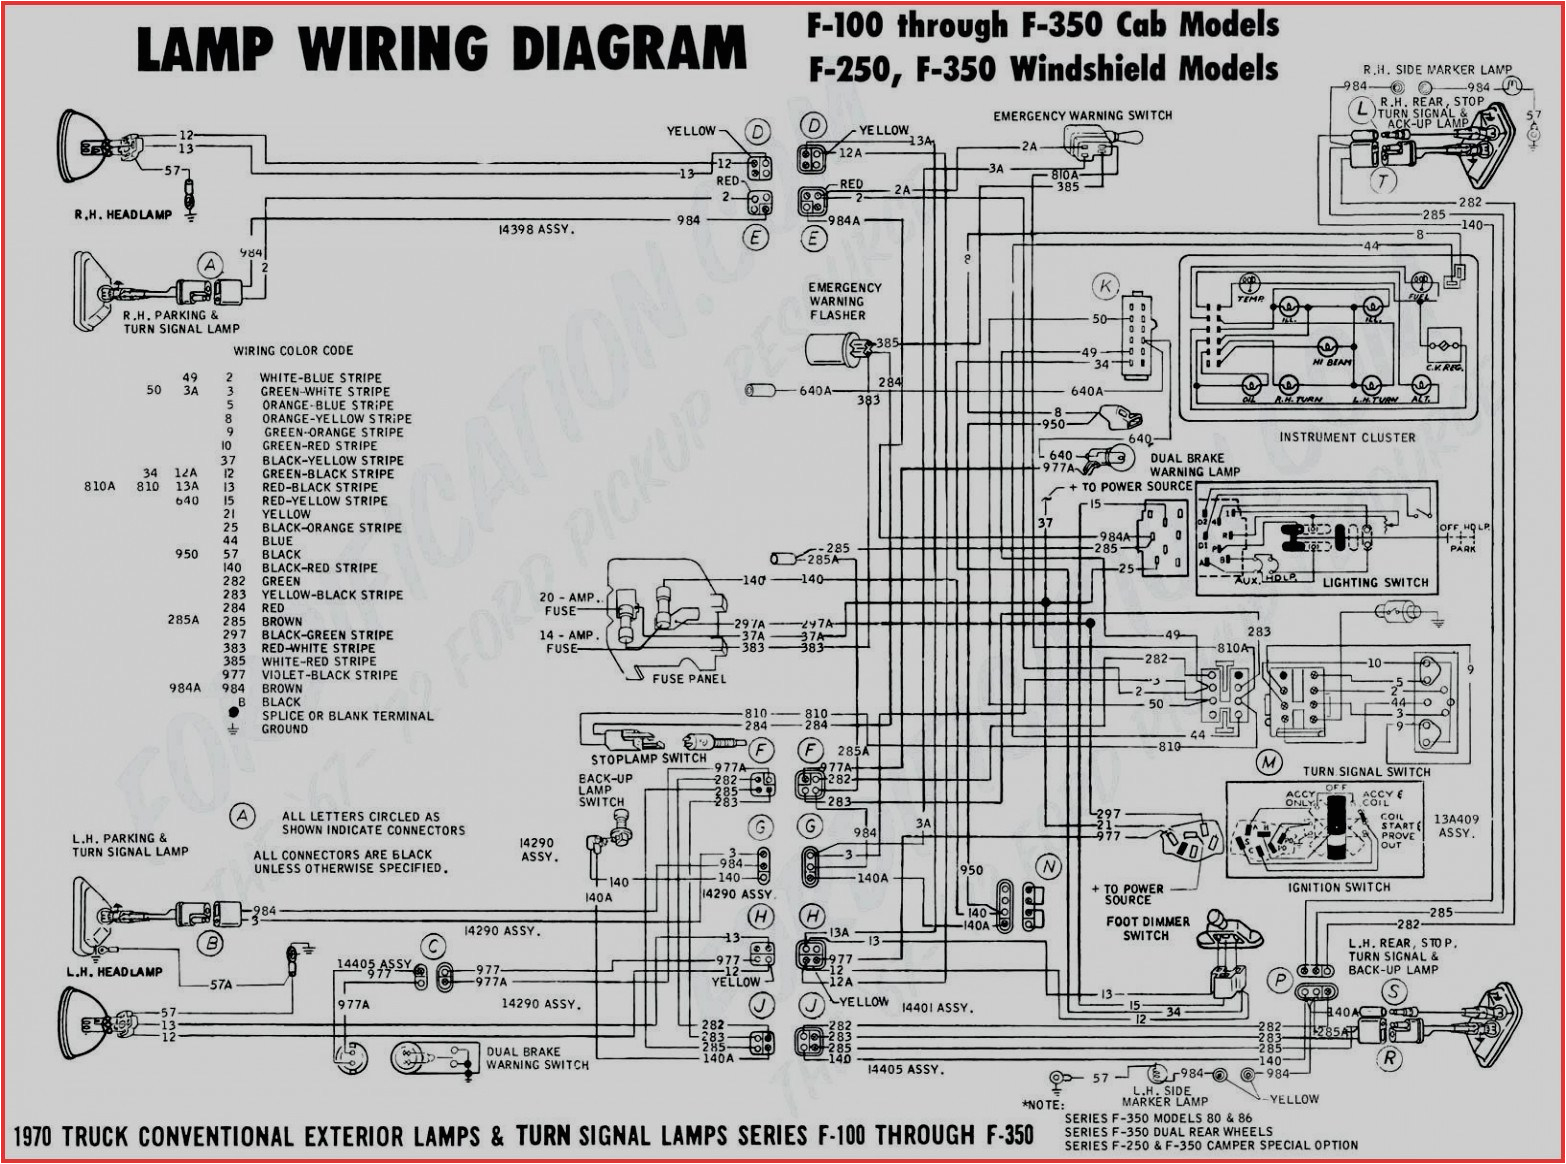 8 Pole Motor Wiring Diagram Pole Relay Wiring Diagram A C 8 Get Free Image About Wiring Diagram